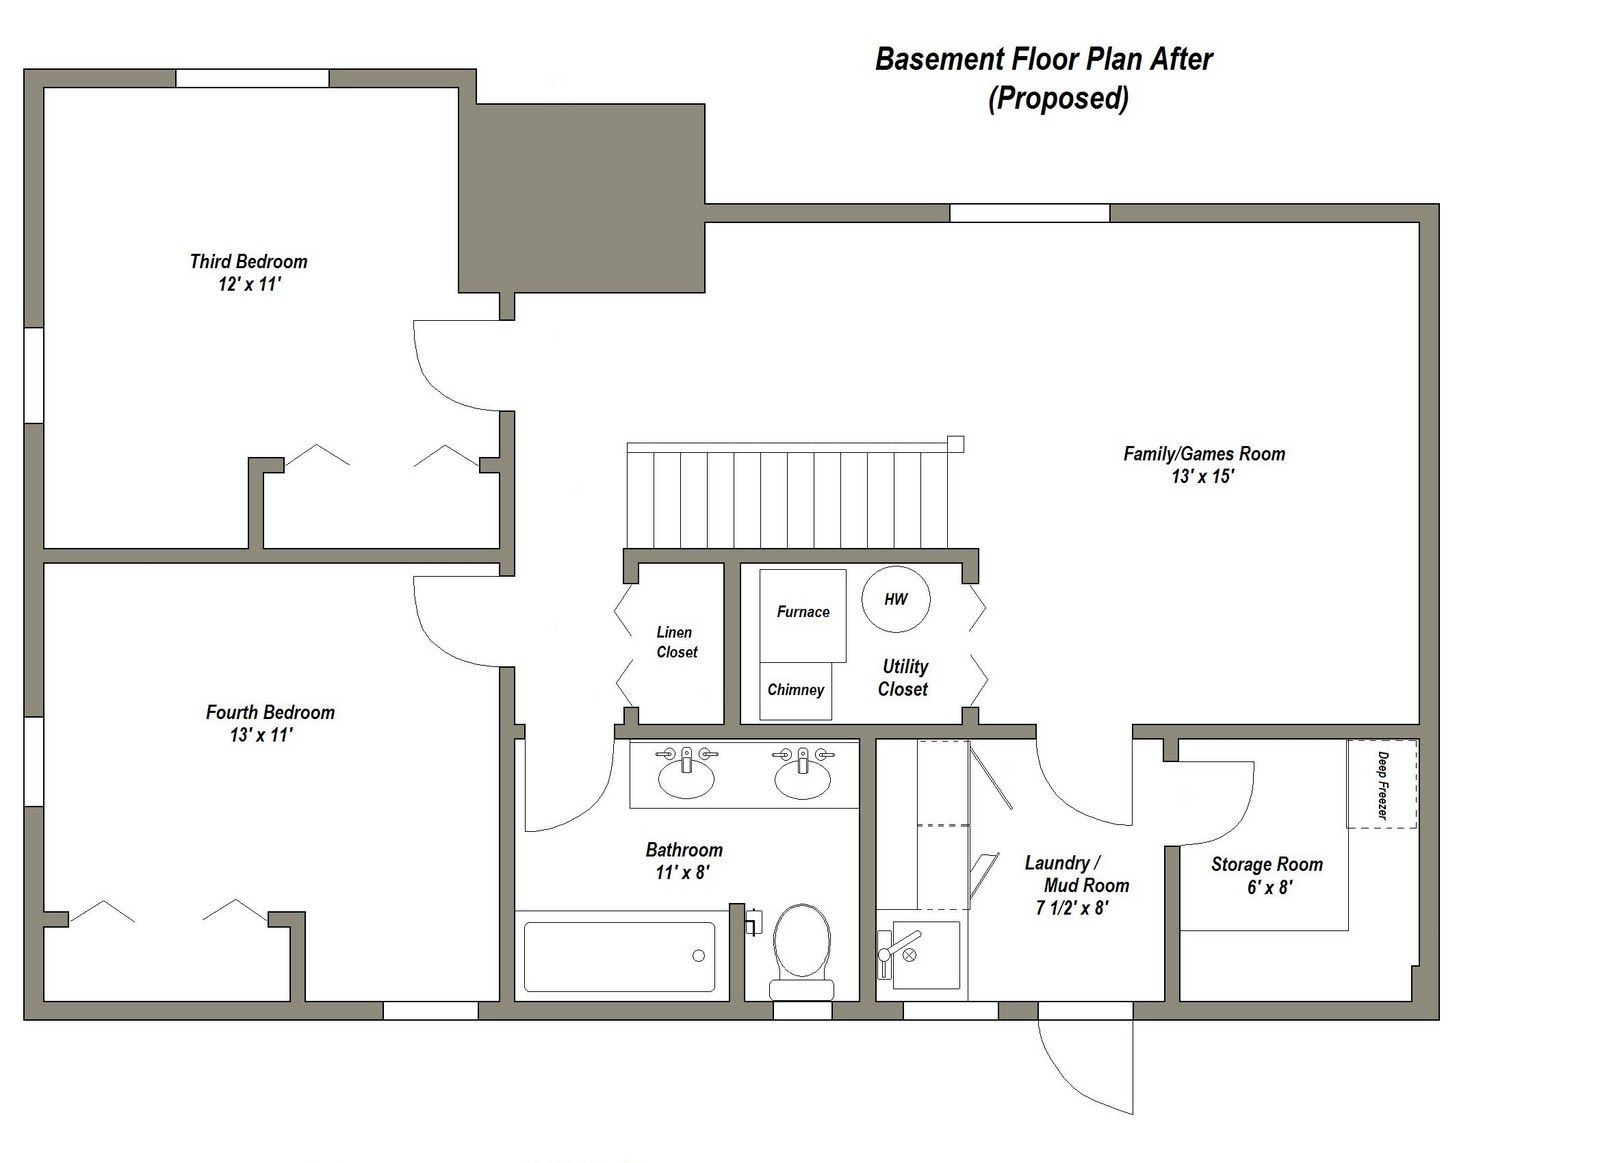 House Plans With Basements if youre planning to build in a cold climate house plans with walkout basements can benefit from special foundations like insulated concrete forms icf Finished Basement Floor Plans Finished Basement Floor Plans Younger Unger